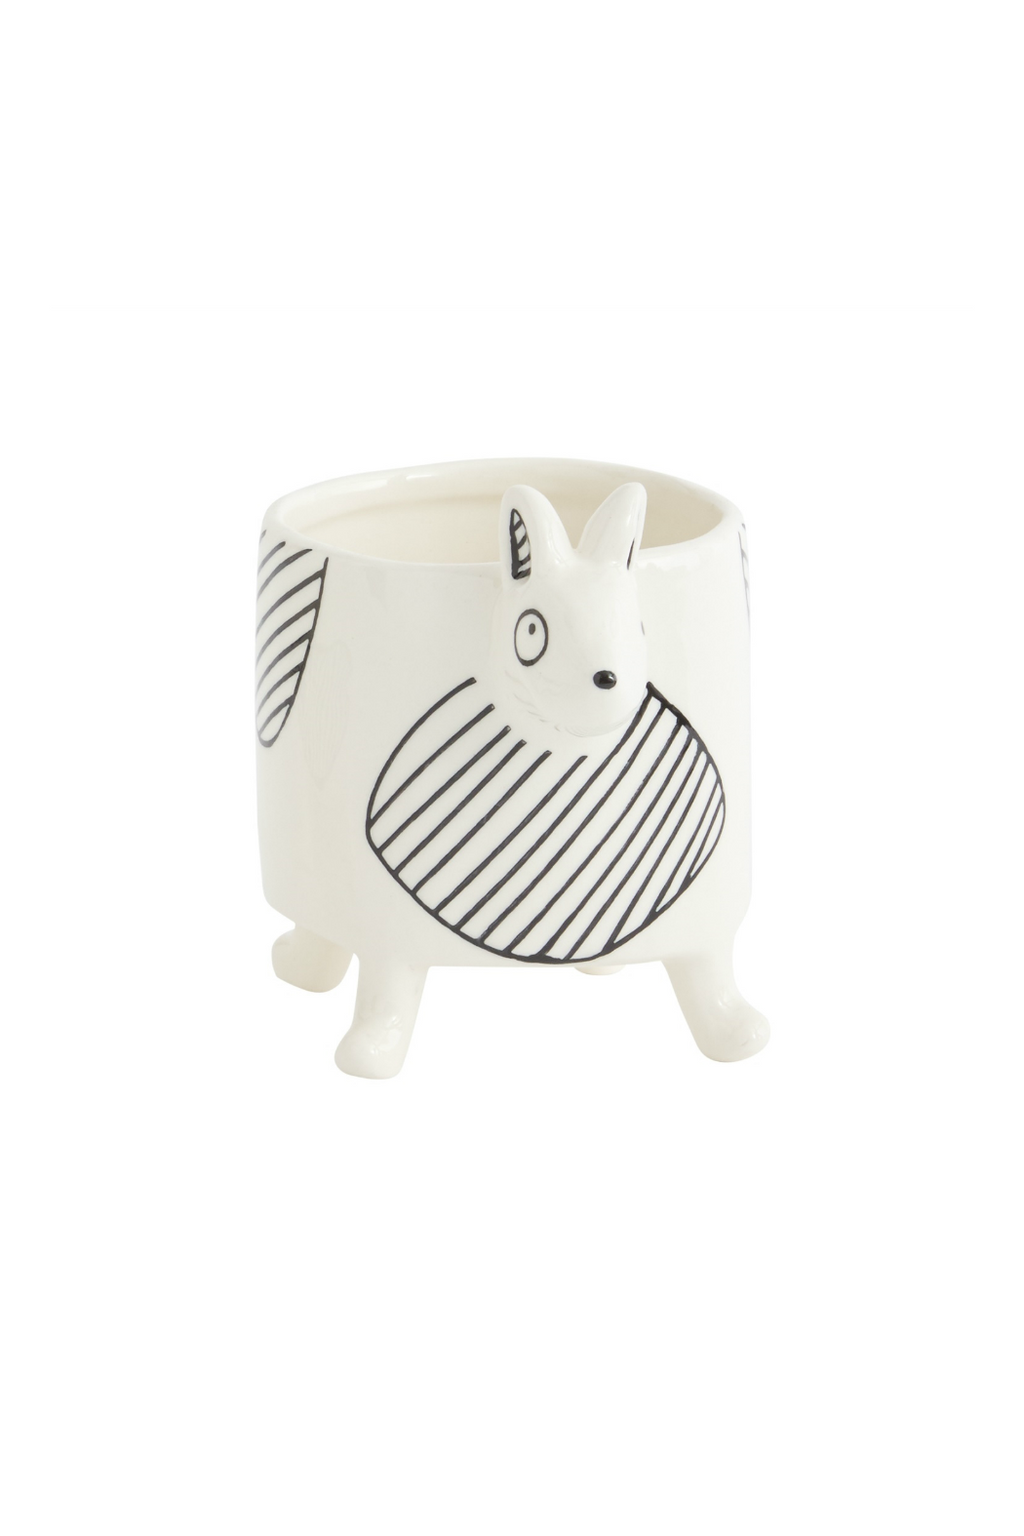 Accent Decor Chappy Pot, Small